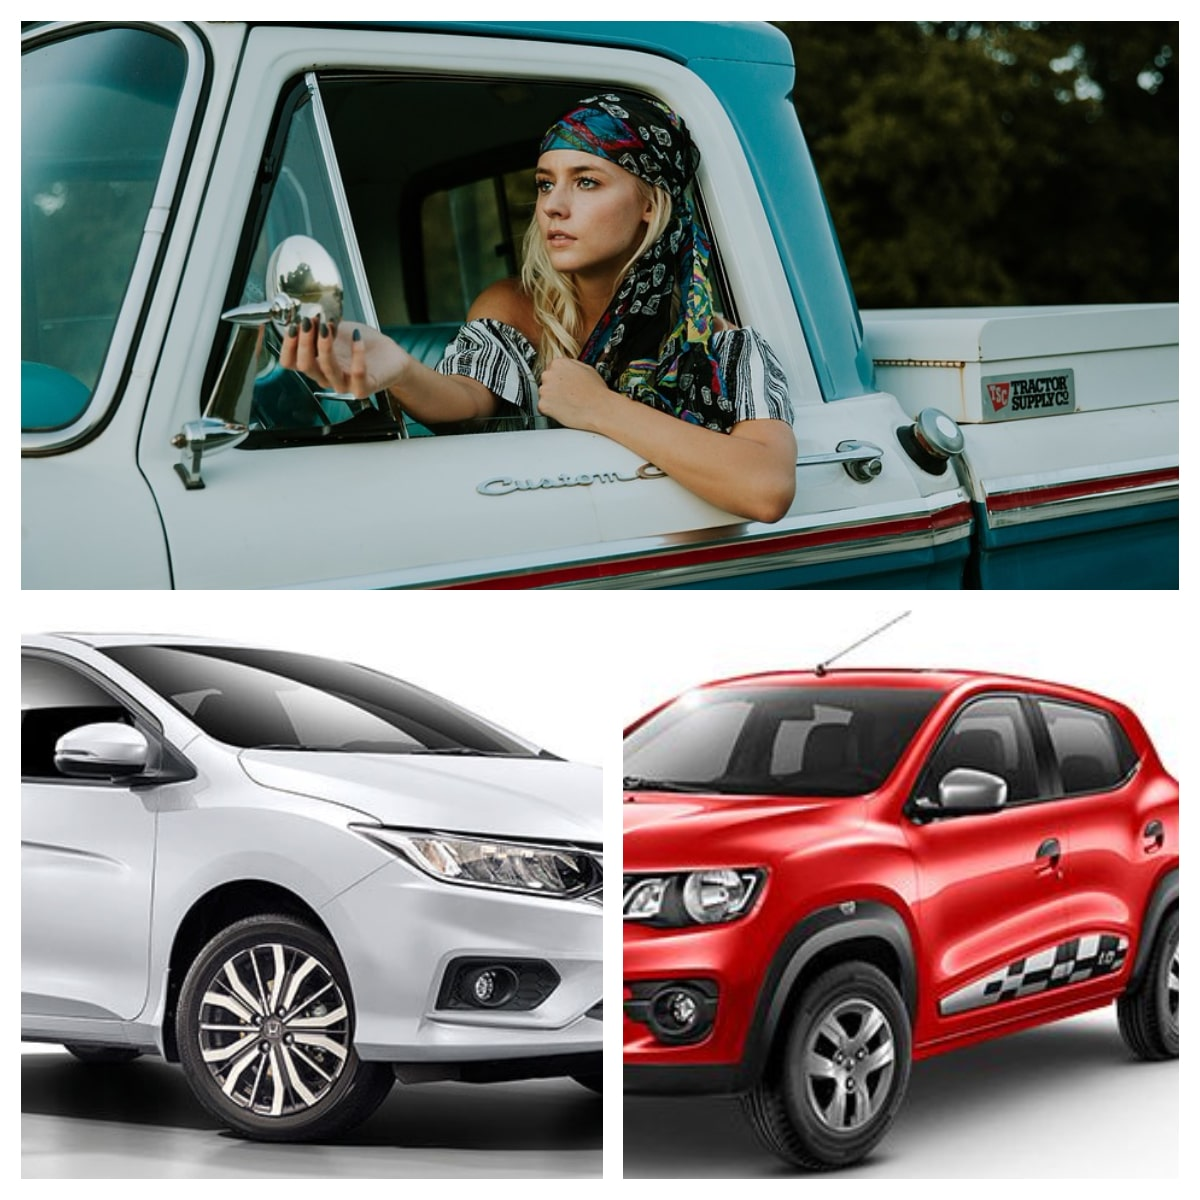 Best Cars For Women In India For 2018, Under 10 Lakh